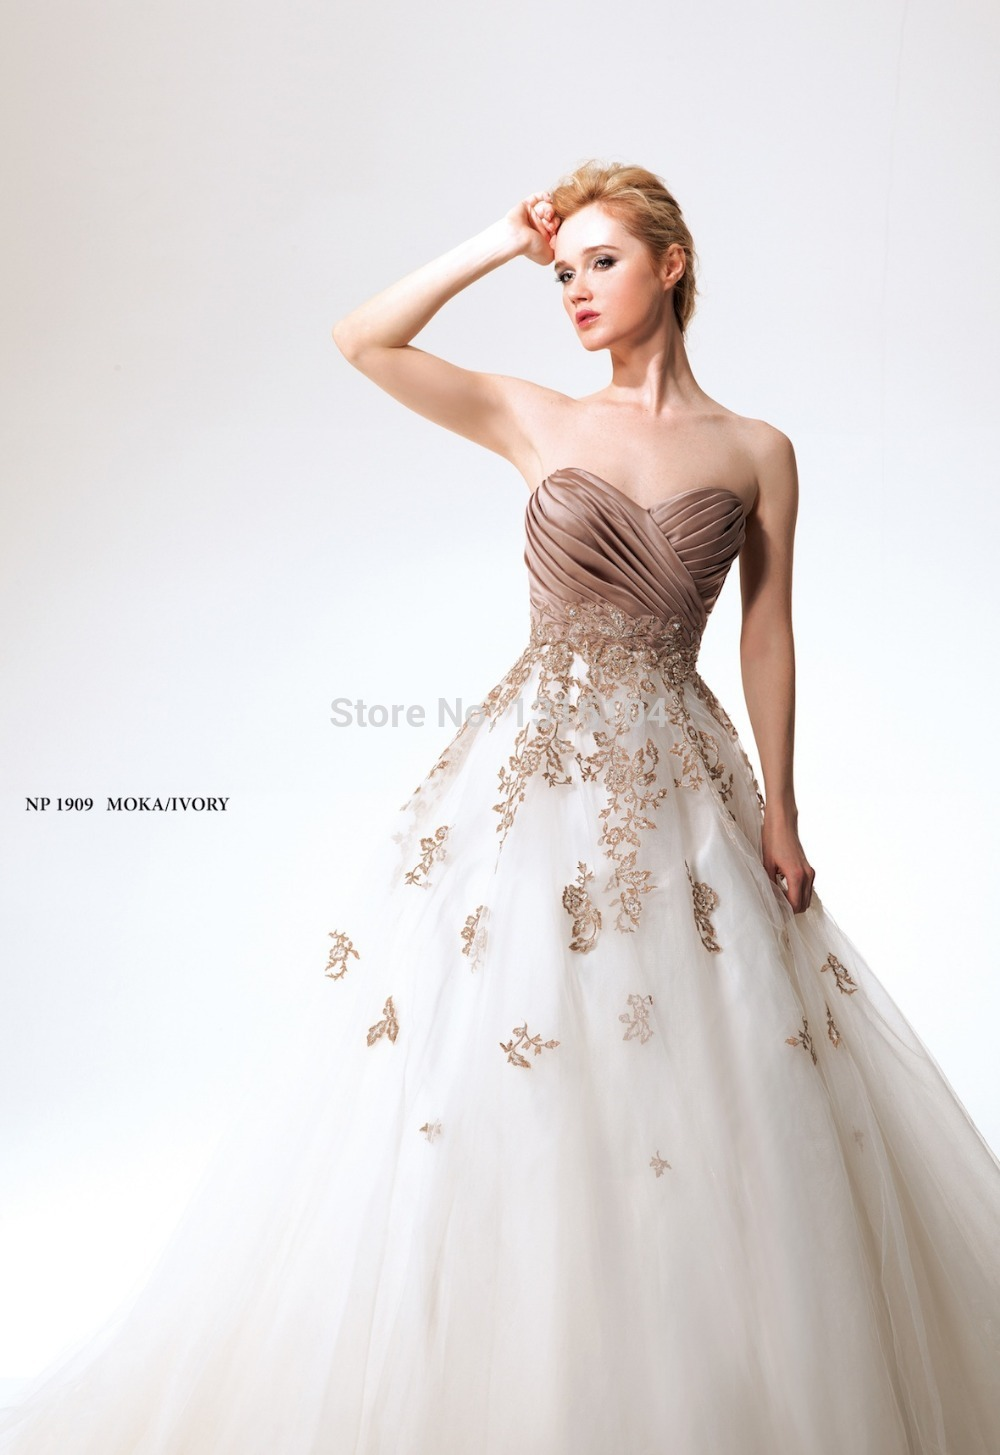 2016 White And Brown Vintage Colorful Wedding Dresses Two Tone Ball Gown Long Liquestulle Sweetheart Bridal Gowns With Color In From